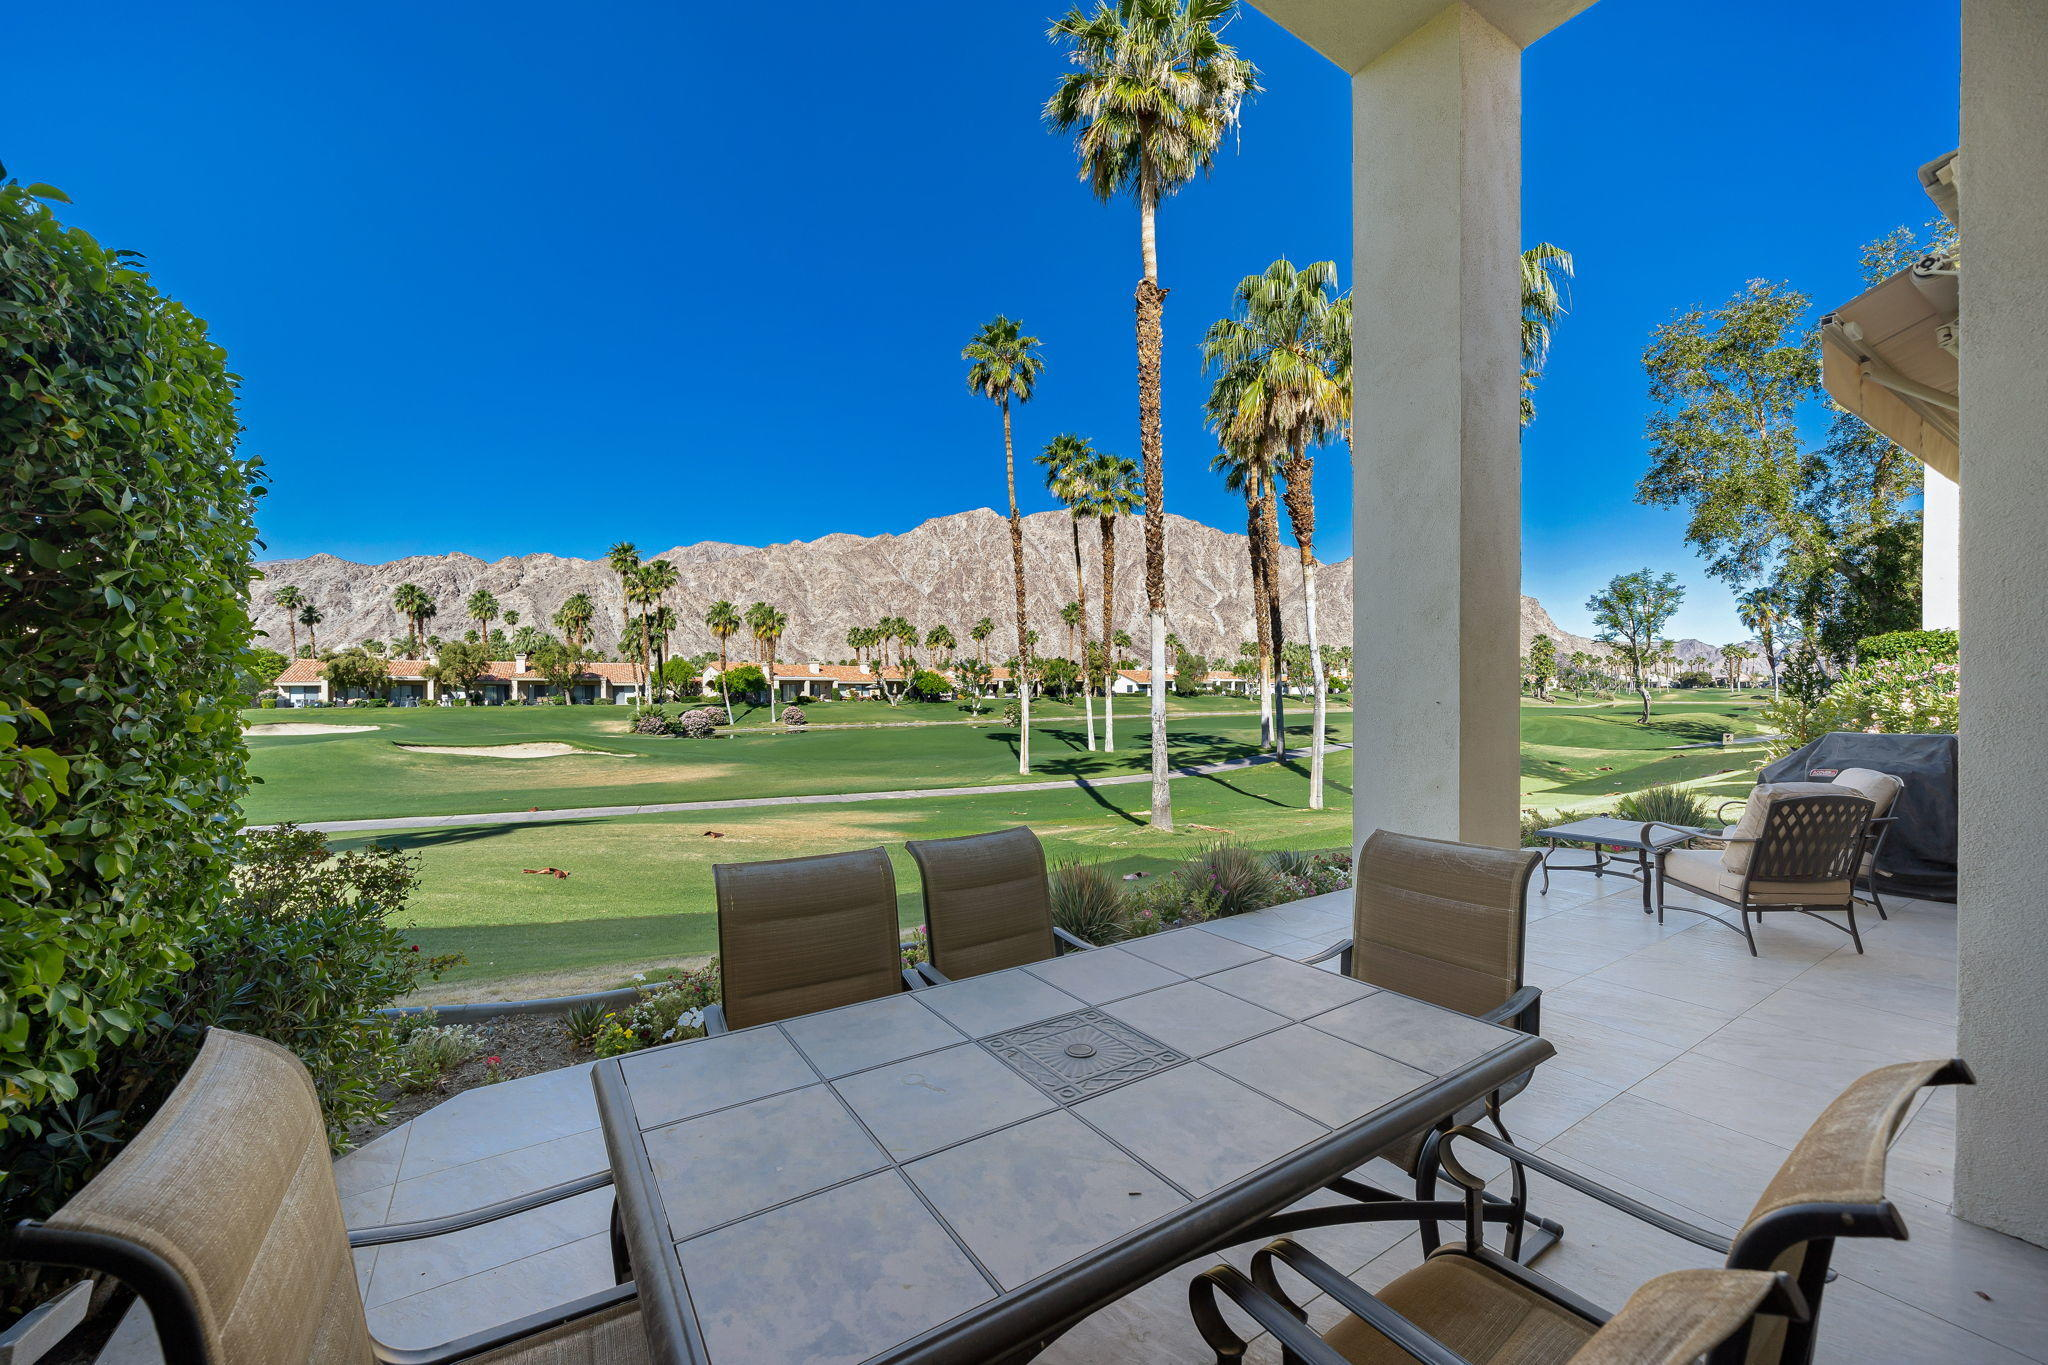 Owner will trade or carry!  One of the best views in PGA West!  Overlooking the 7th Fairway of the Palmer Private Course and surrounded by the stunning Santa Rosa Mountains!  This popular Champion 4 is beautifully appointed with porcelain tile wood style flooring, fresh white paint throughout, recessed lighting & fixtures. The wall has been opened between the kitchen and living room for that great room feeling!  Updated bathrooms are finished with fresh white cabinetry, new sinks & faucets!  There is a formal dining area for family dinners or step out back to the extended patio with plenty of room for outdoor entertaining!  You will want to see this one! Offered Furnished!